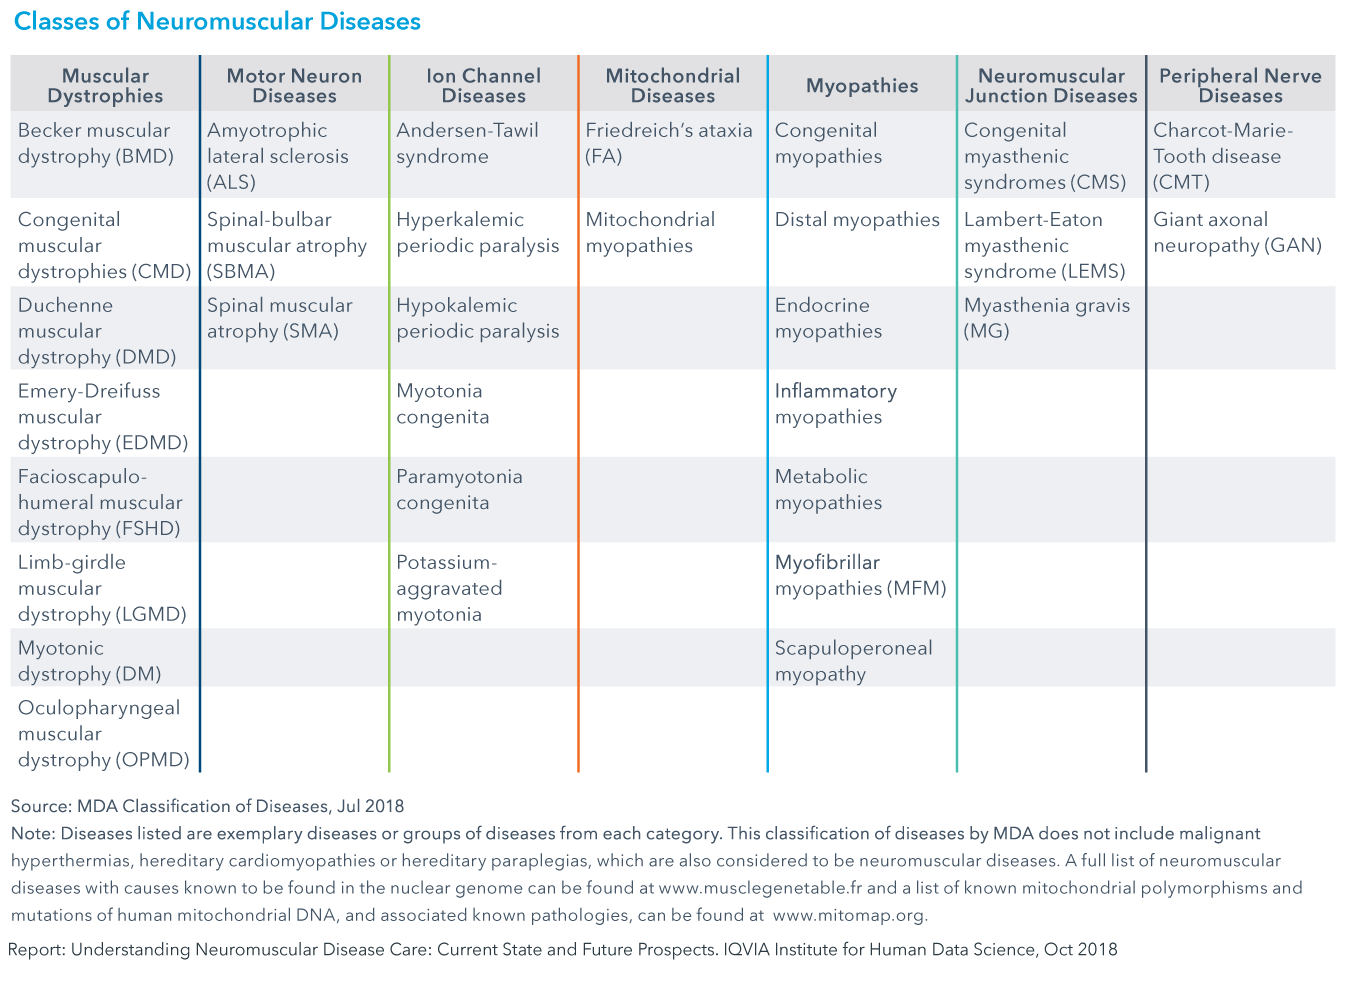 Chart 1: Classes of Neuromuscular Diseases